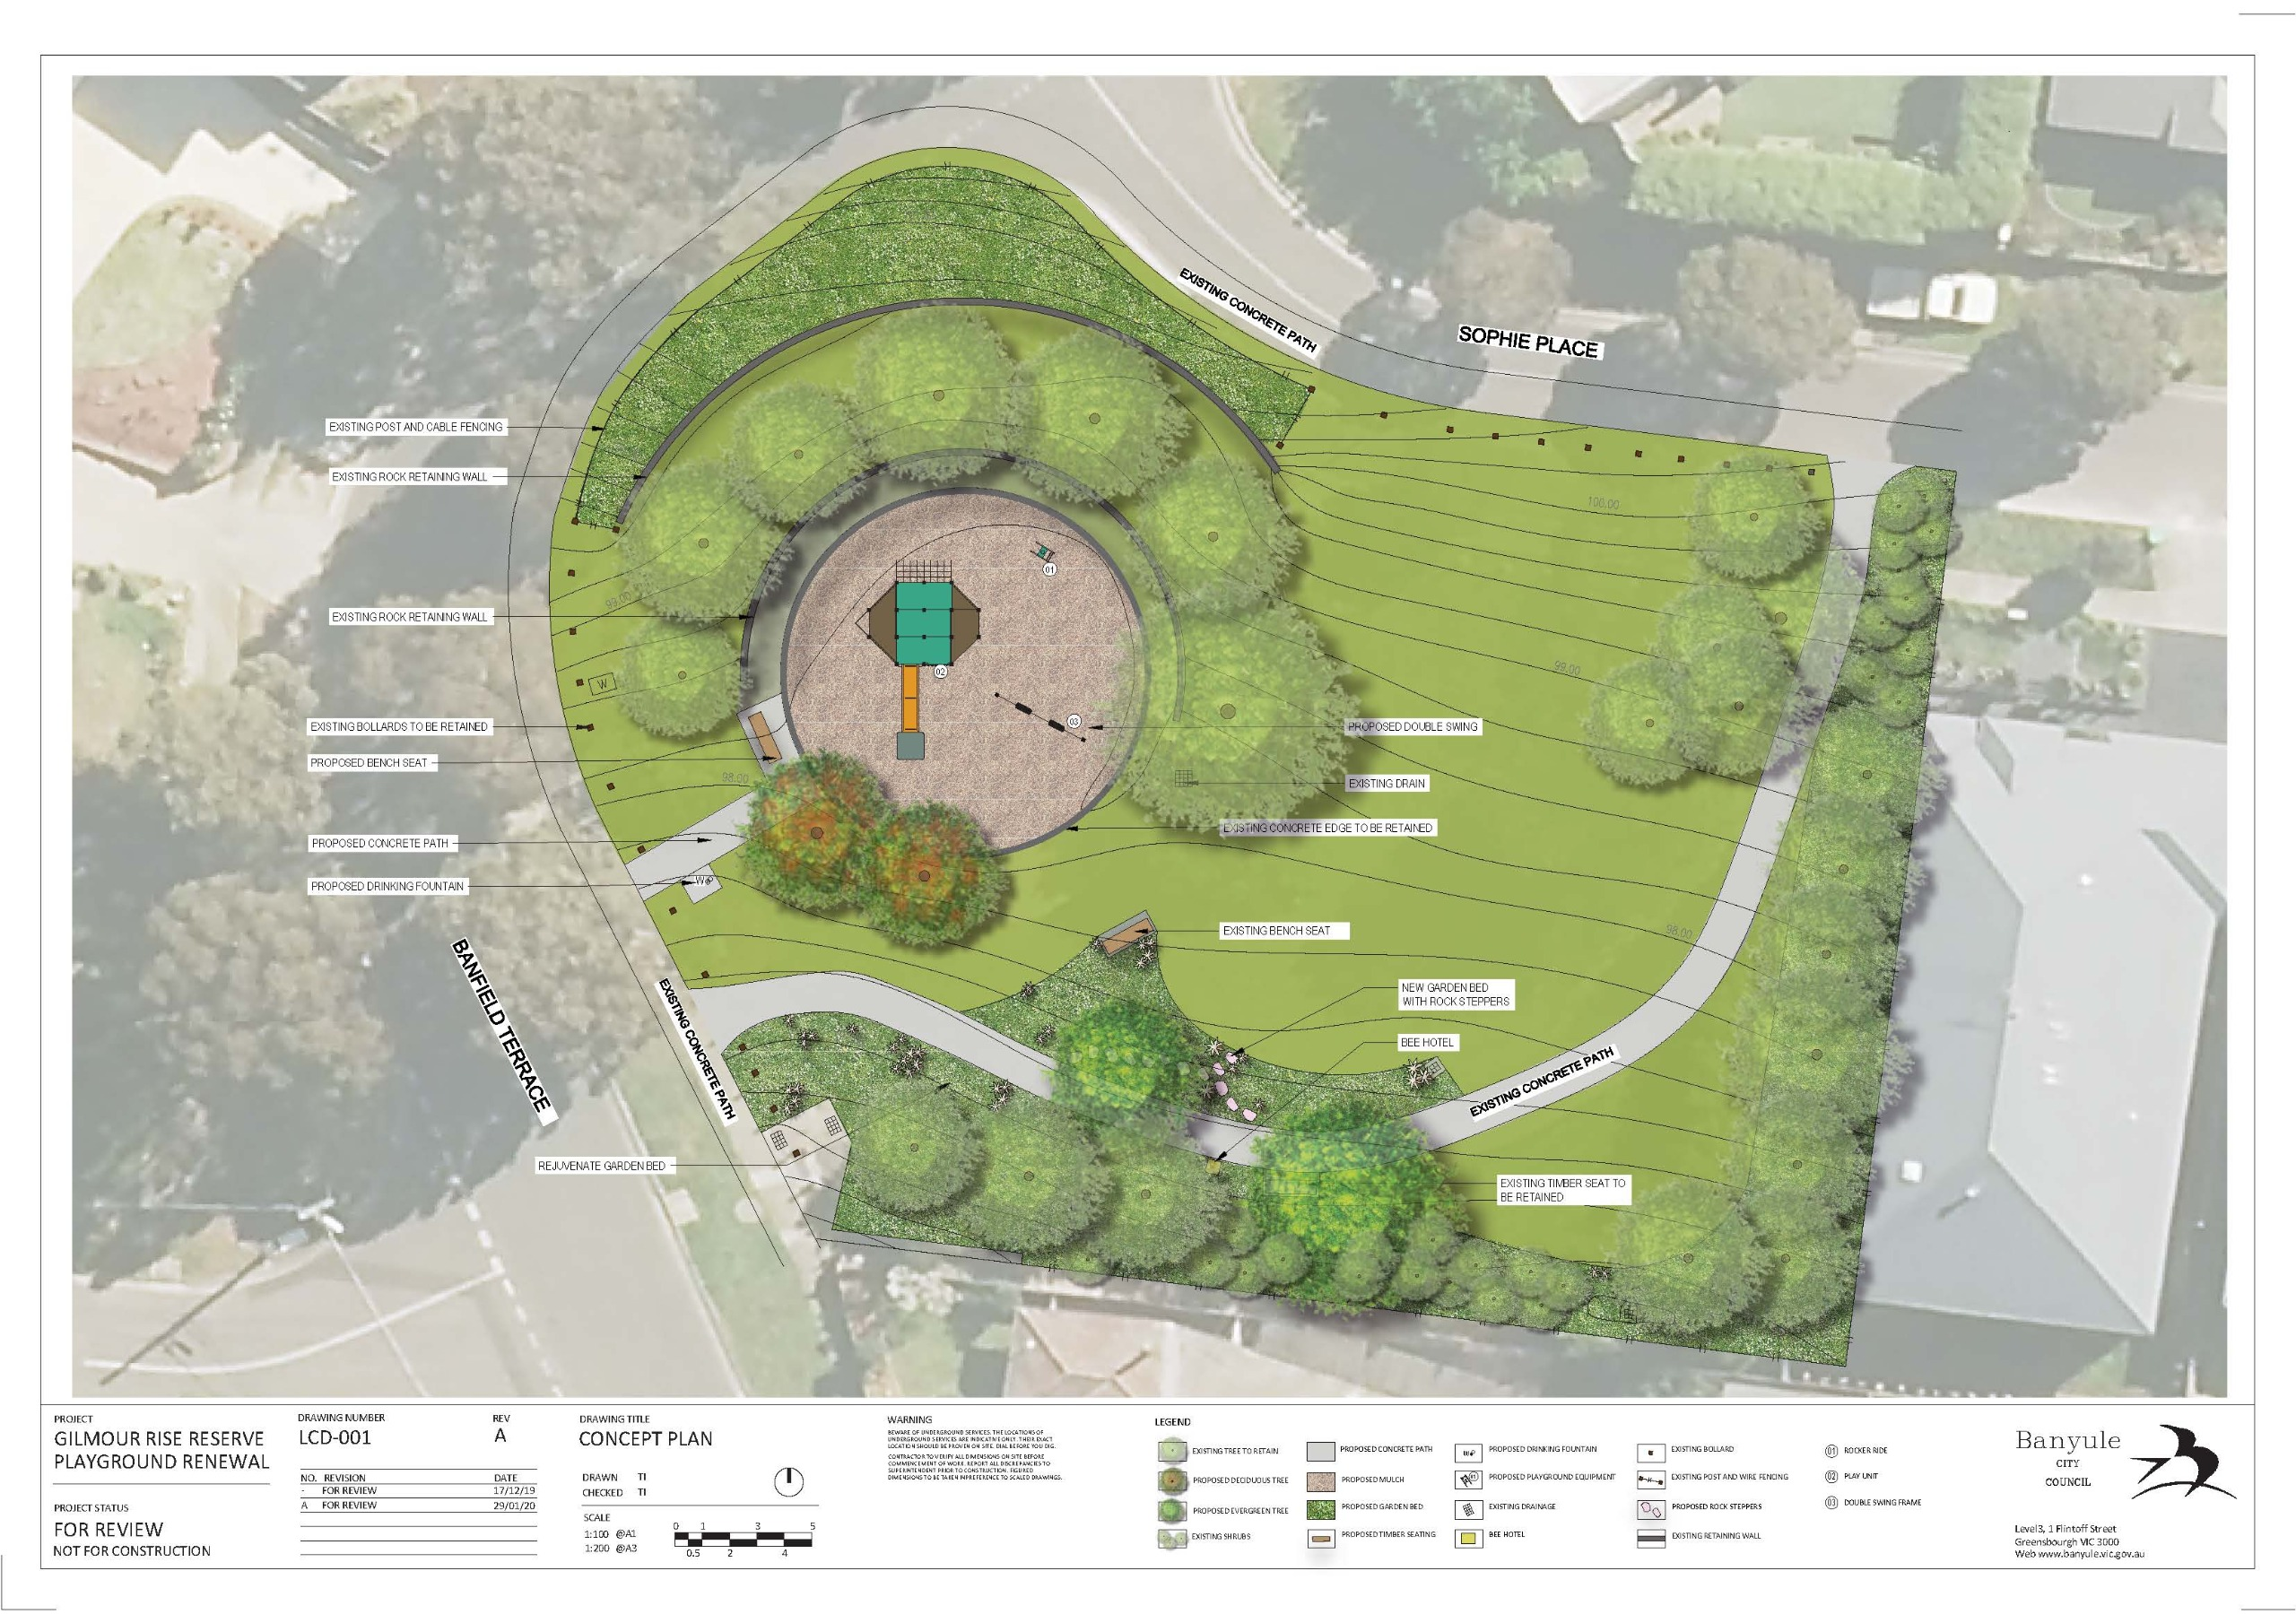 Gilmour Rise Reserve Playground - updated concept design plans